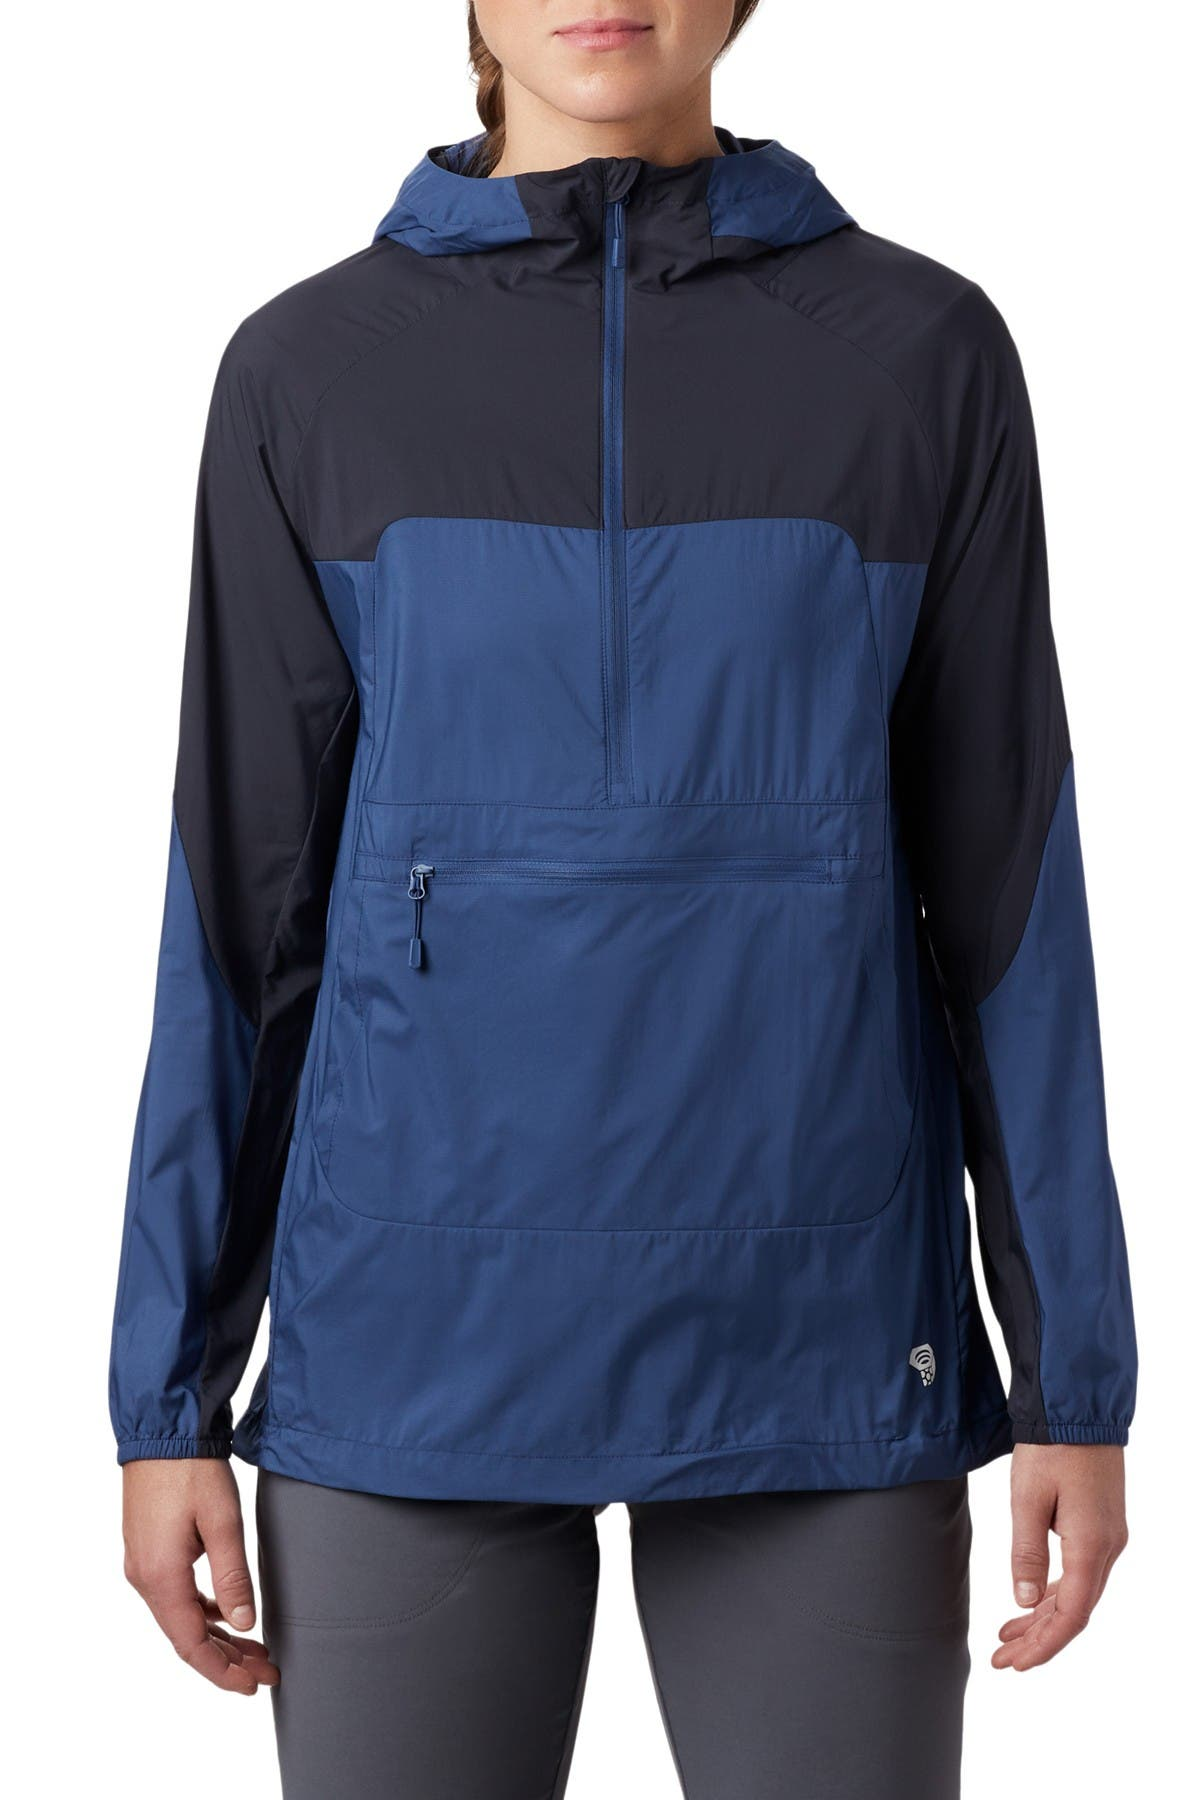 Image of MOUNTAIN HARDWEAR Kor Preshell™ Shape Jacket